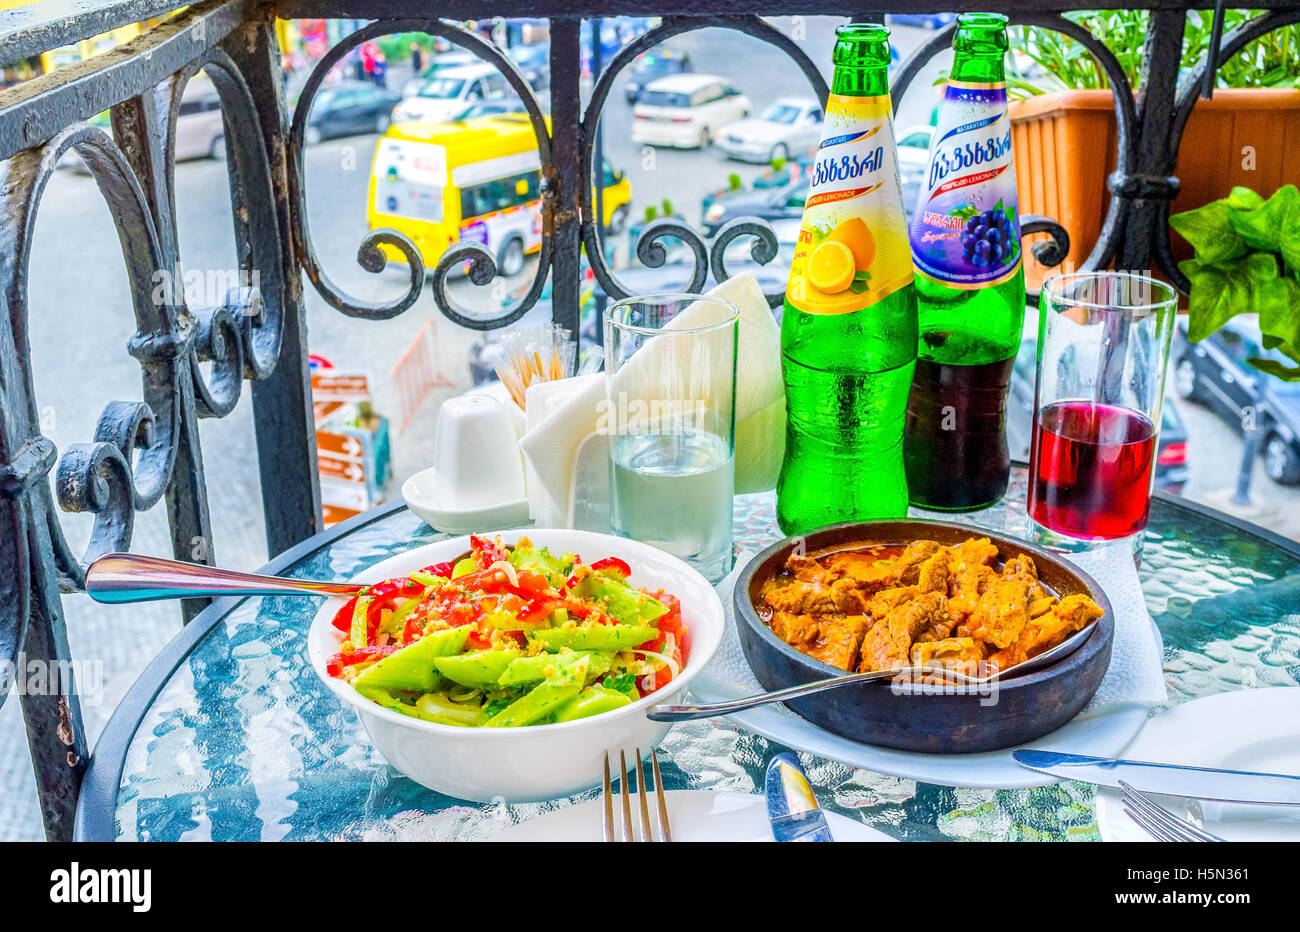 The dinner in outdoor terrace of cafe in old town with vegetable salad, baked veal in souse and Georgian lemonade, - Stock Image